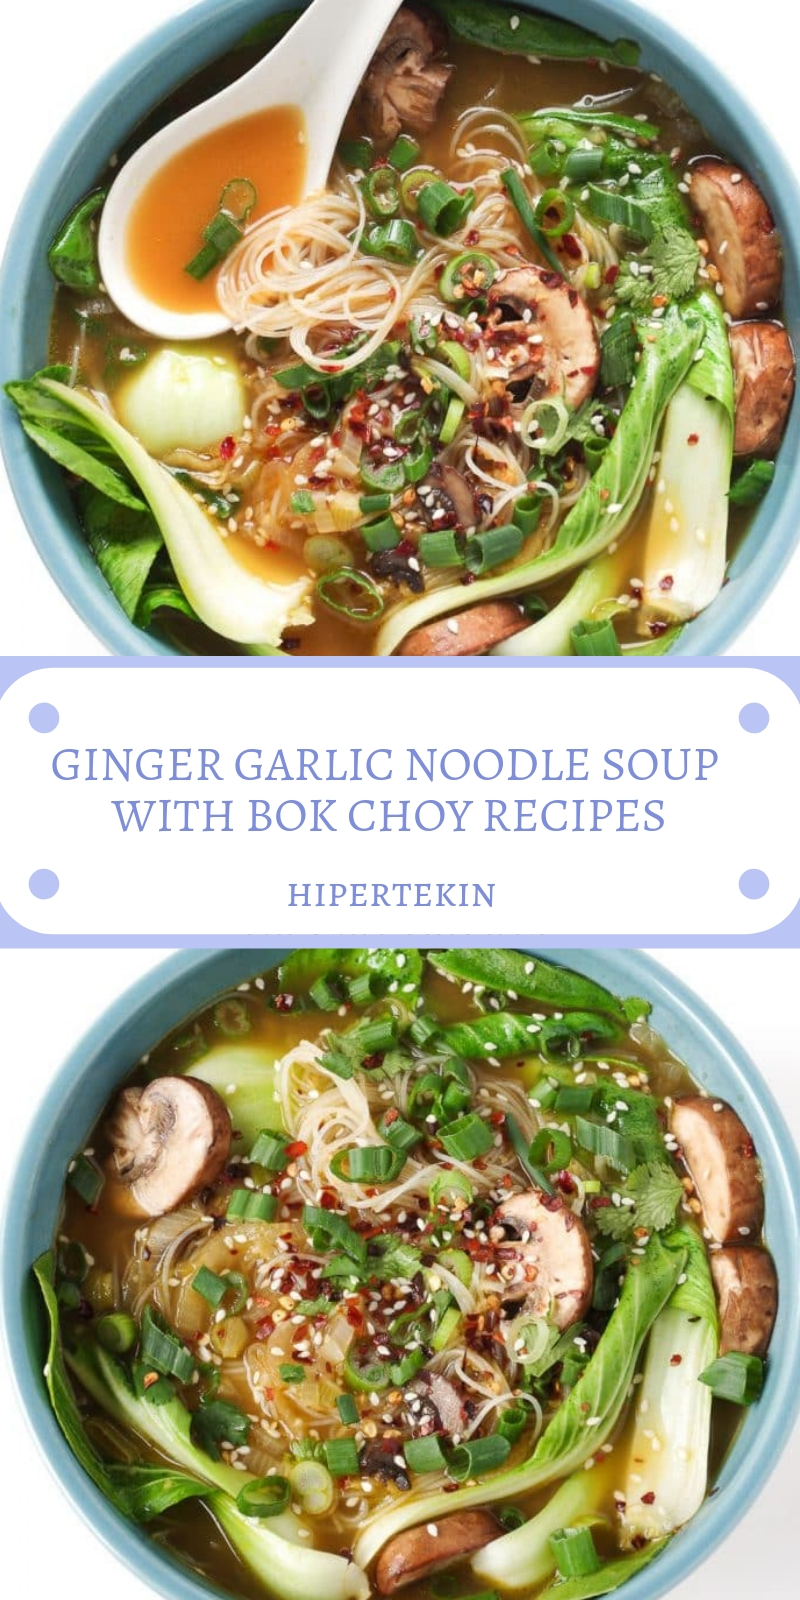 GINGER GARLIC NOODLE SOUP WITH BOK CHOY RECIPES